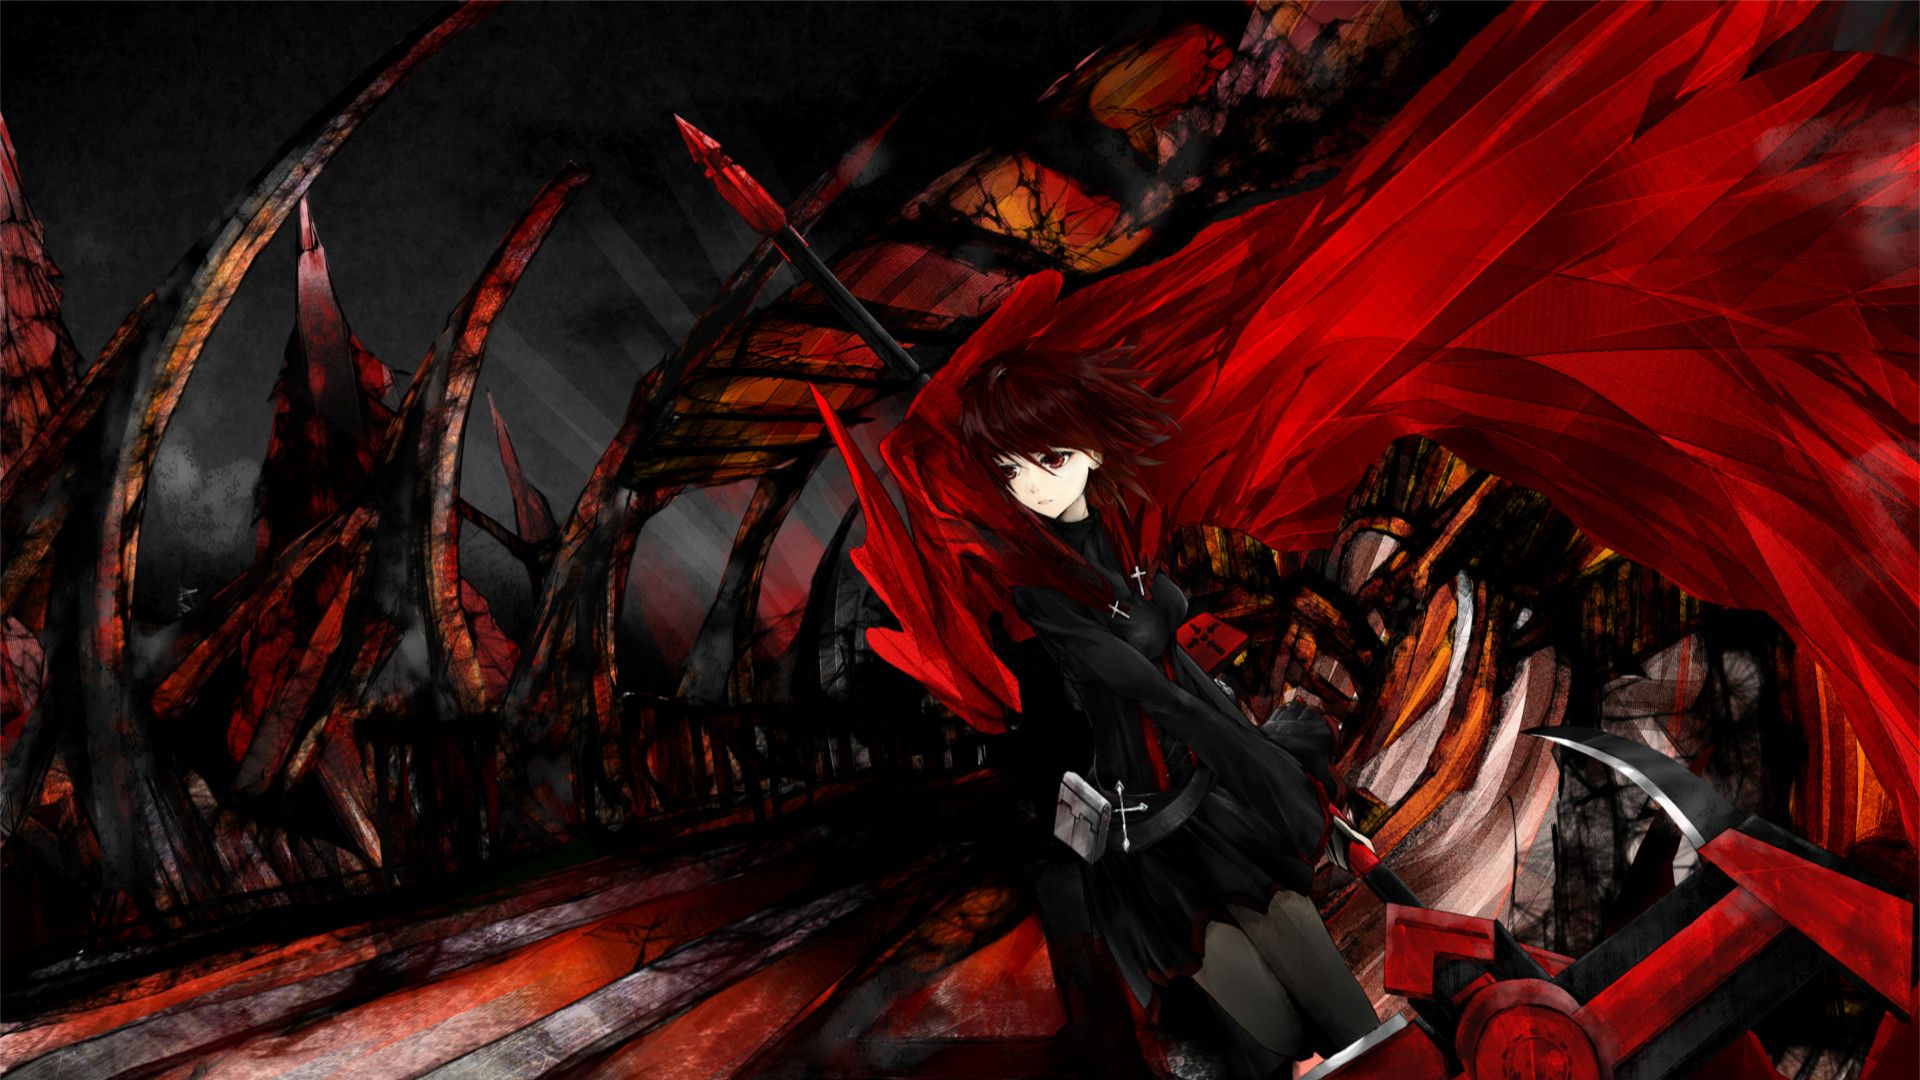 Dark Red Anime Boys Wallpapers Top Free Dark Red Anime Boys Backgrounds Wallpaperaccess